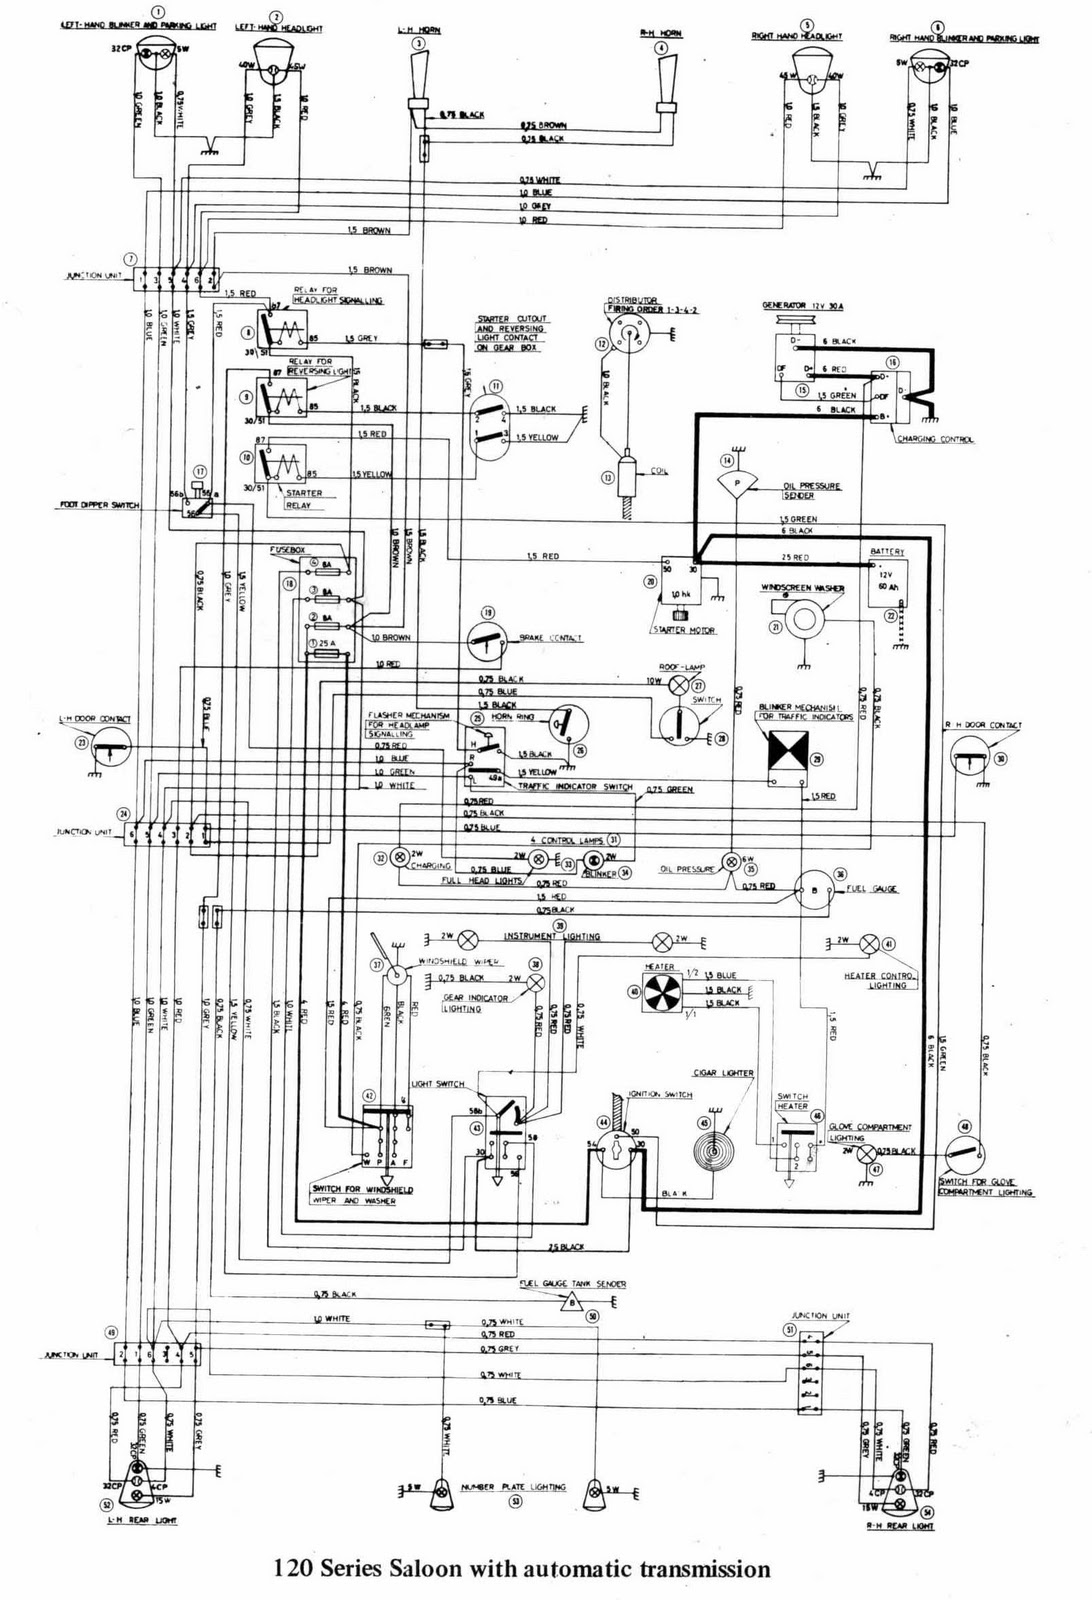 1995 Buick Lesabre Ac Wiring Diagram Worksheet And 2000 Ignition Switch Riviera Ecc Experts Of U2022 Rh Evilcloud Co Uk Regal Ls Schematic Troubleshooting